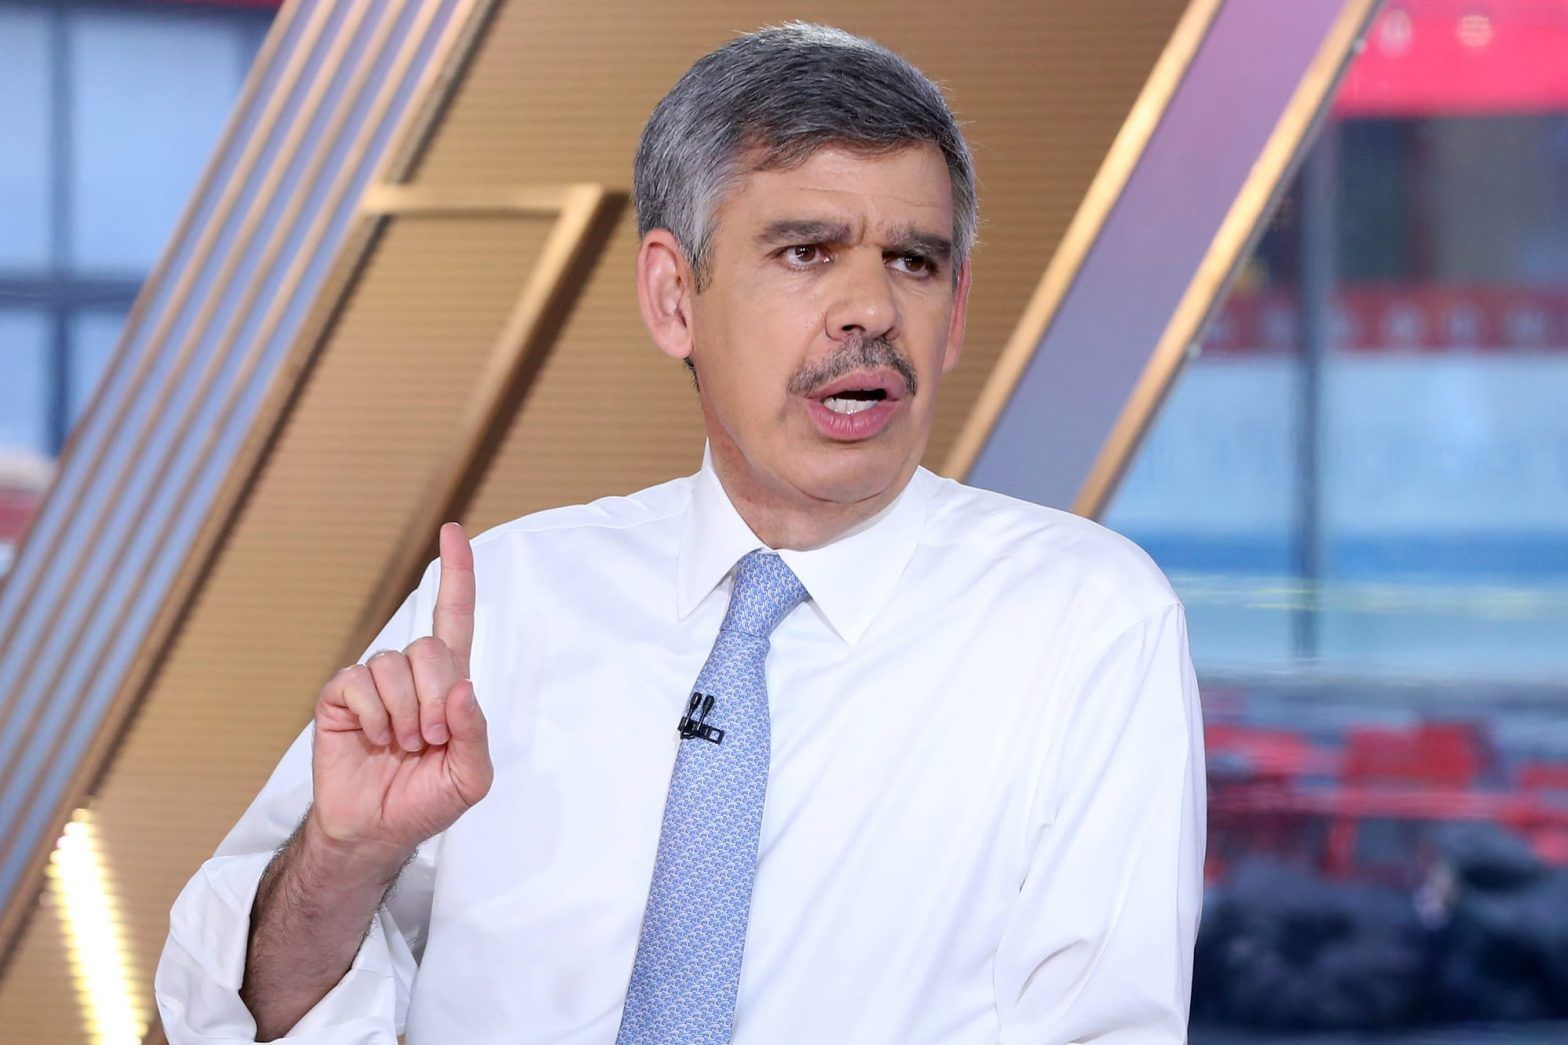 El-Erian blasts Fed, saying it should have been 'laser-focused' on market failures and cut rates later – CNBC